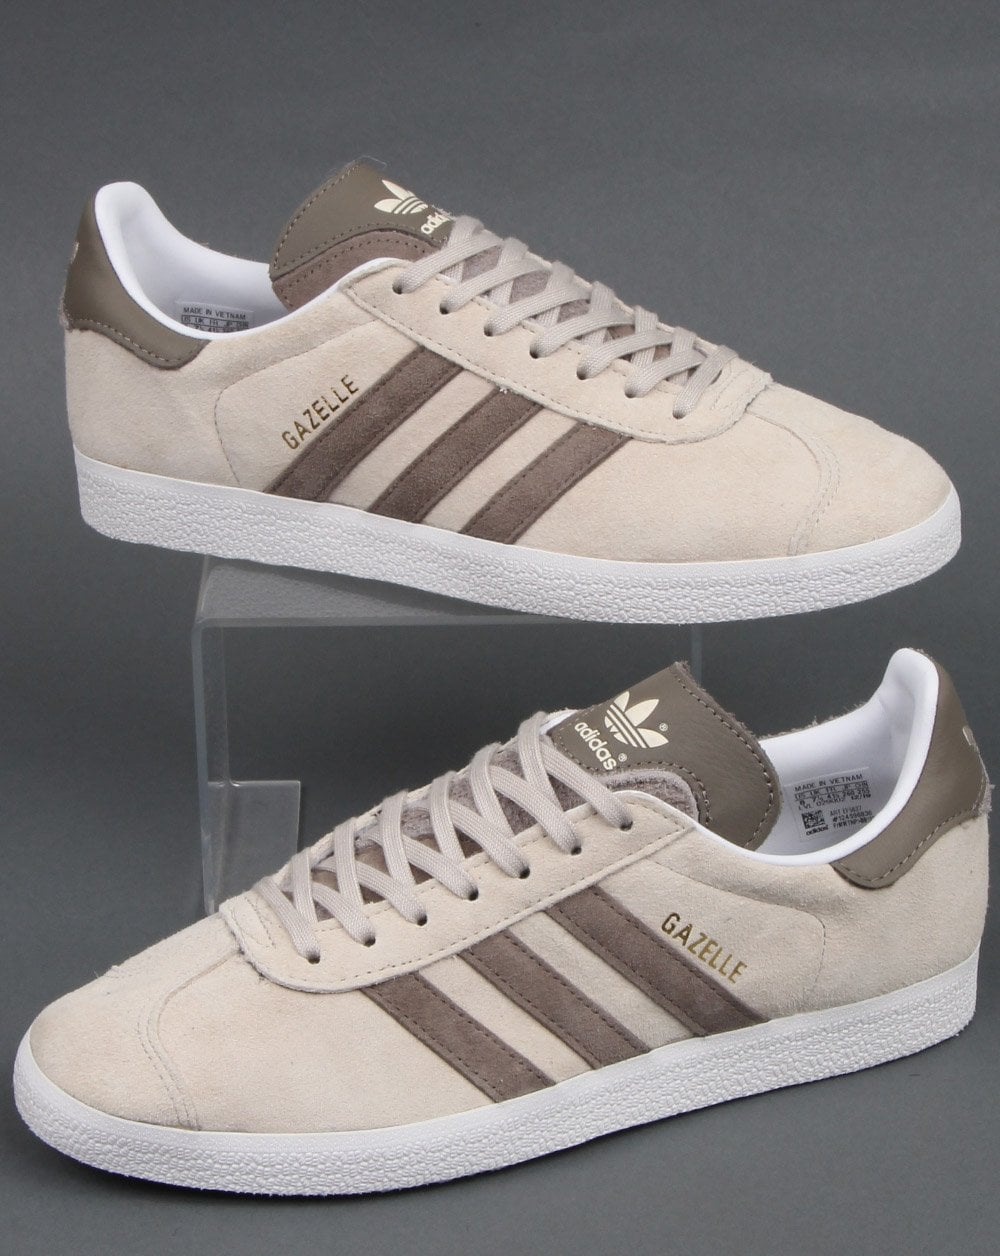 Sindicato es inutil acre  Adidas Gazelle Trainers Clear Brown - 80s Casual Classics